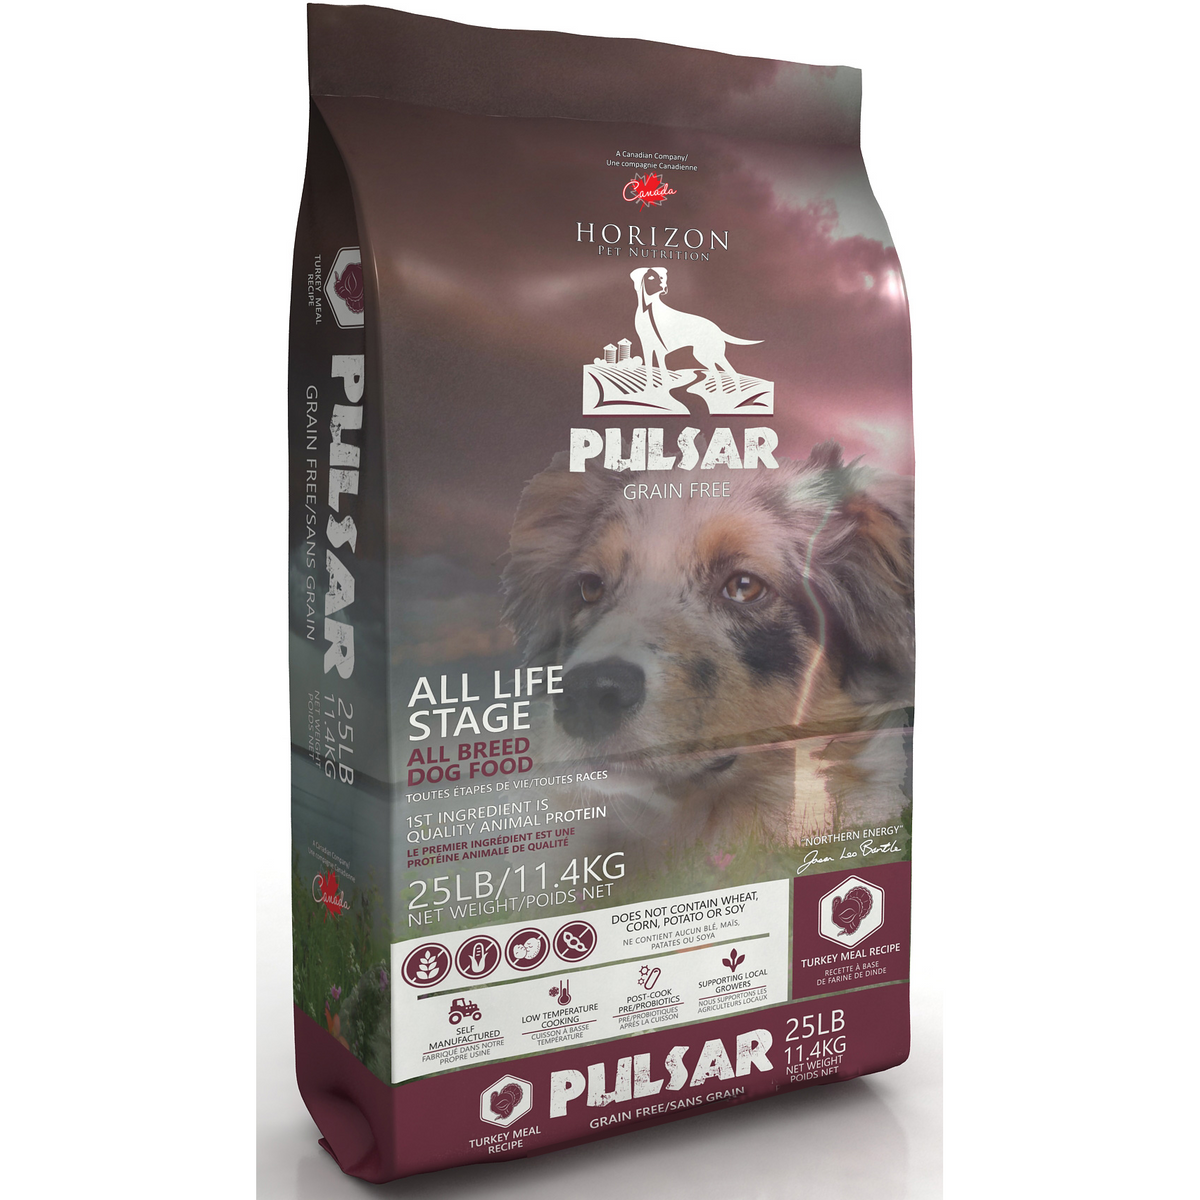 Horizon Pulsar Pulses and Turkey Formula Grain Free Dog Food